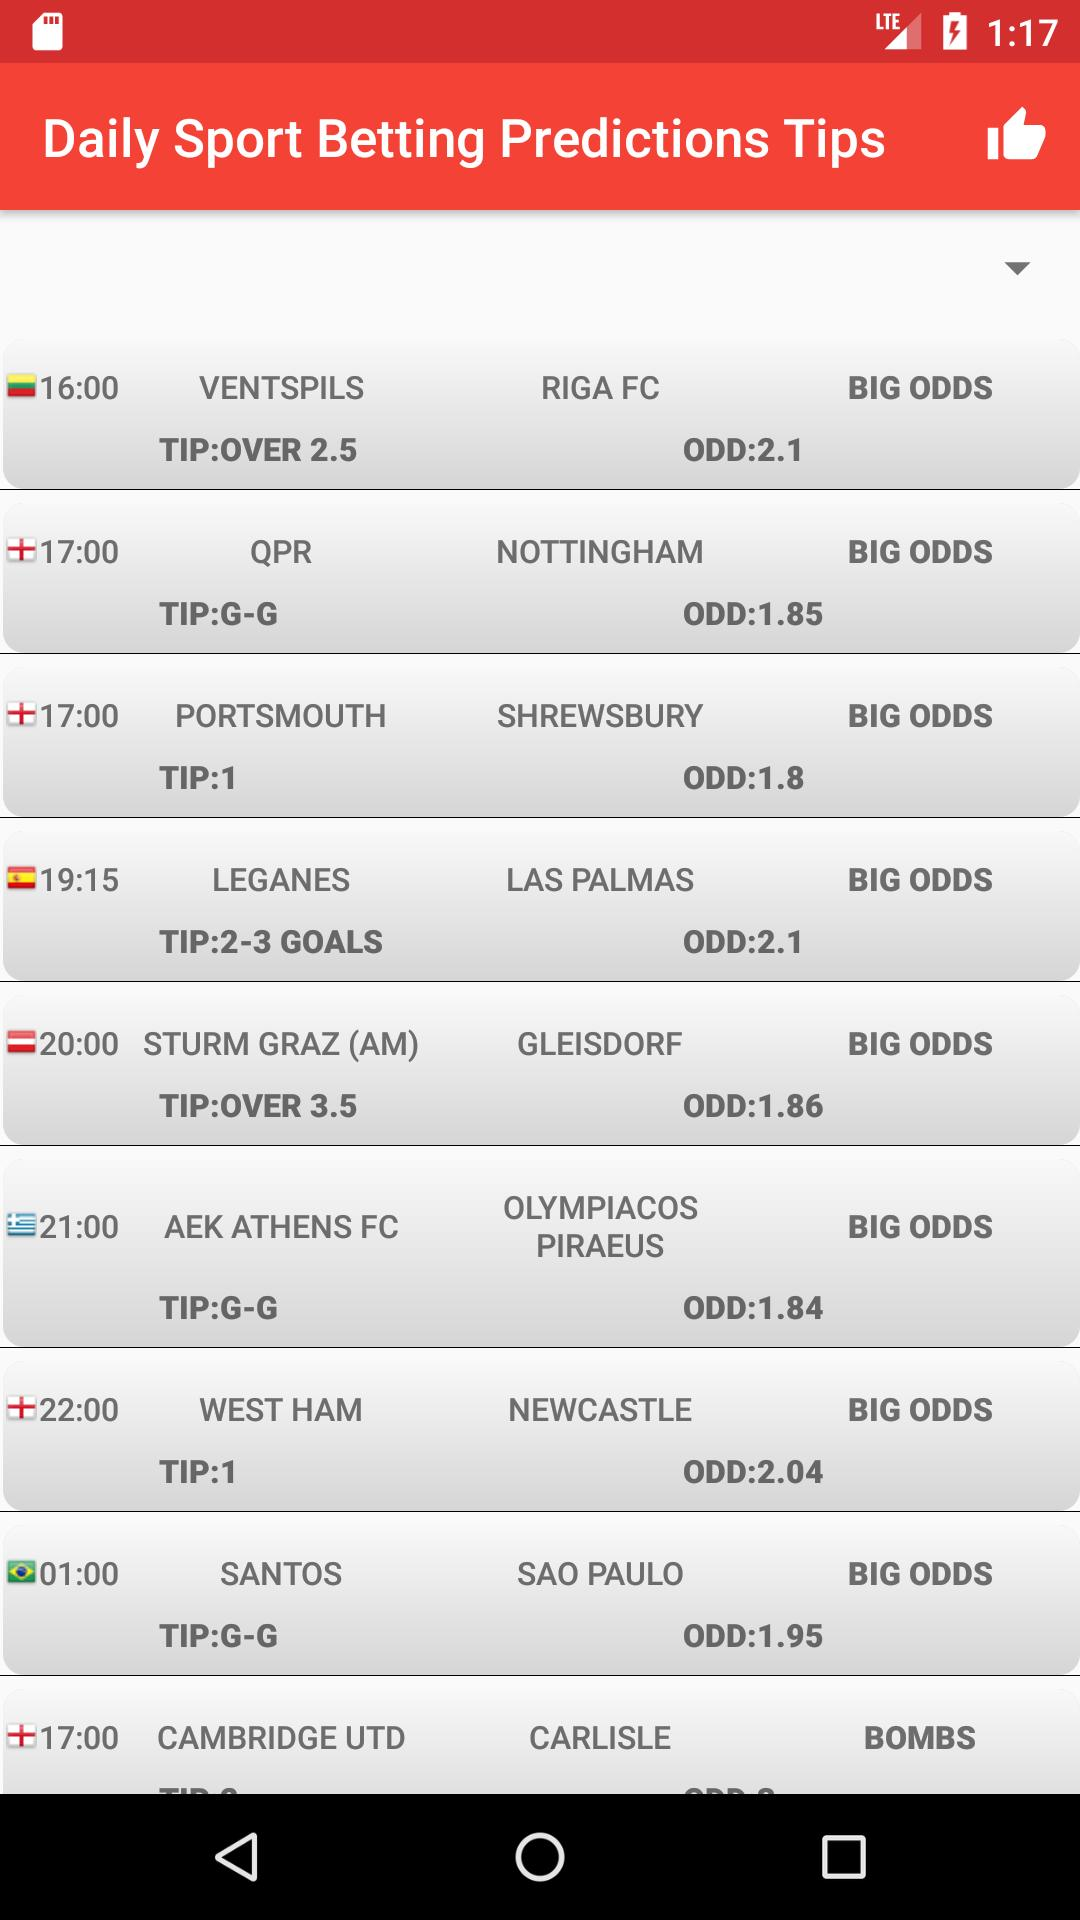 Sport betting predictions tips alwasy bet on blue